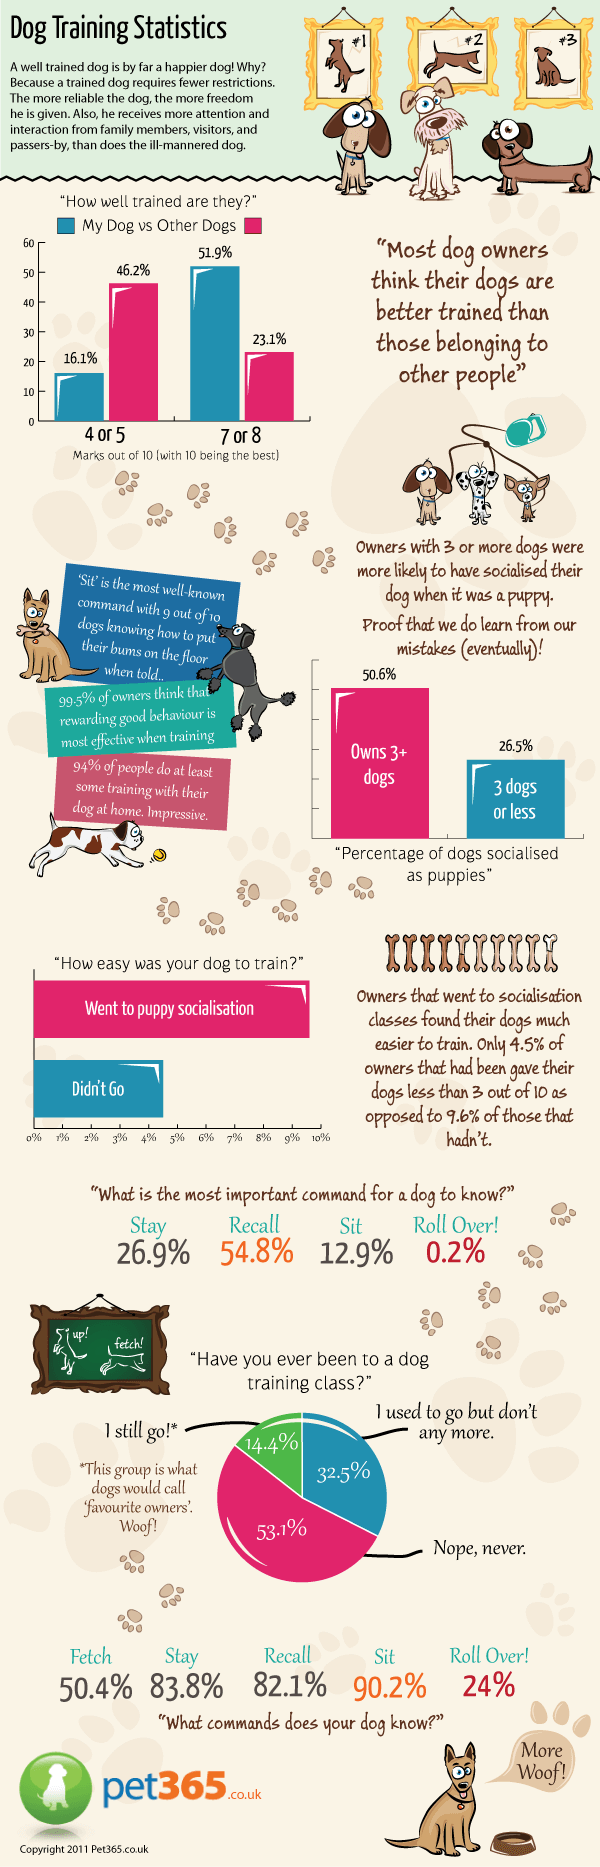 Dog Crate Training & Teaching INFOGRAFICS - PRESS TO SEE IN FULL SIZE!